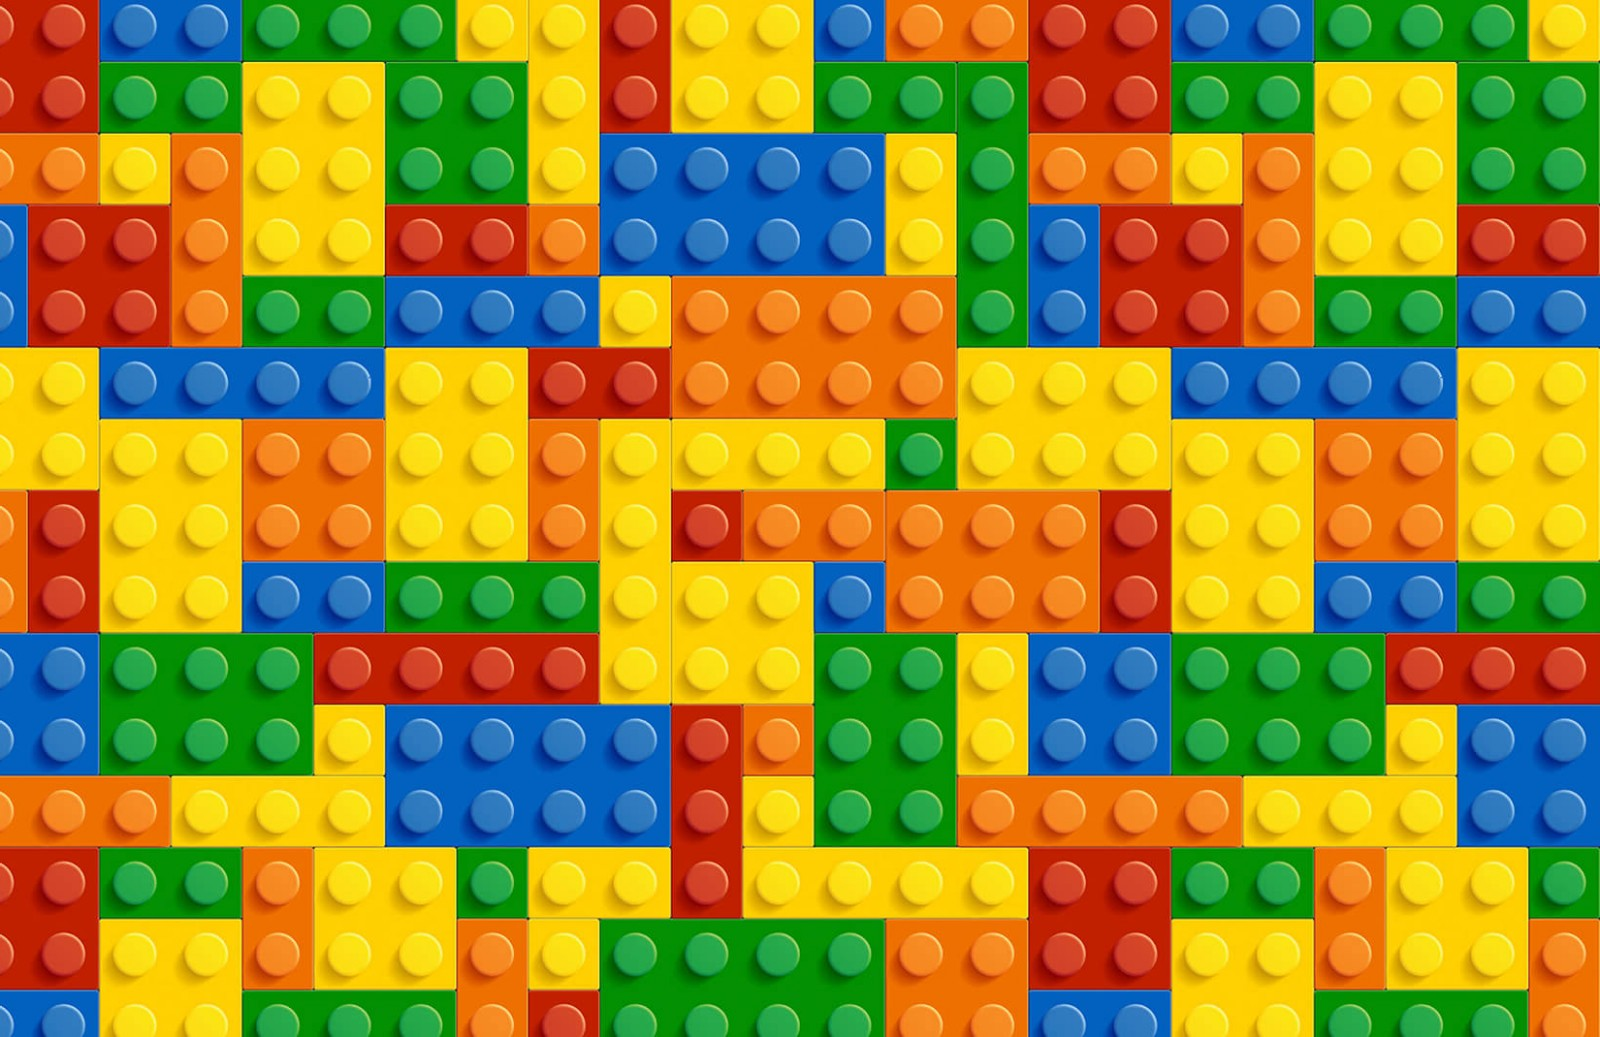 Colorful Lego Wallpaper Lego Wallpaper Hd 3018041 Hd Wallpaper Backgrounds Download